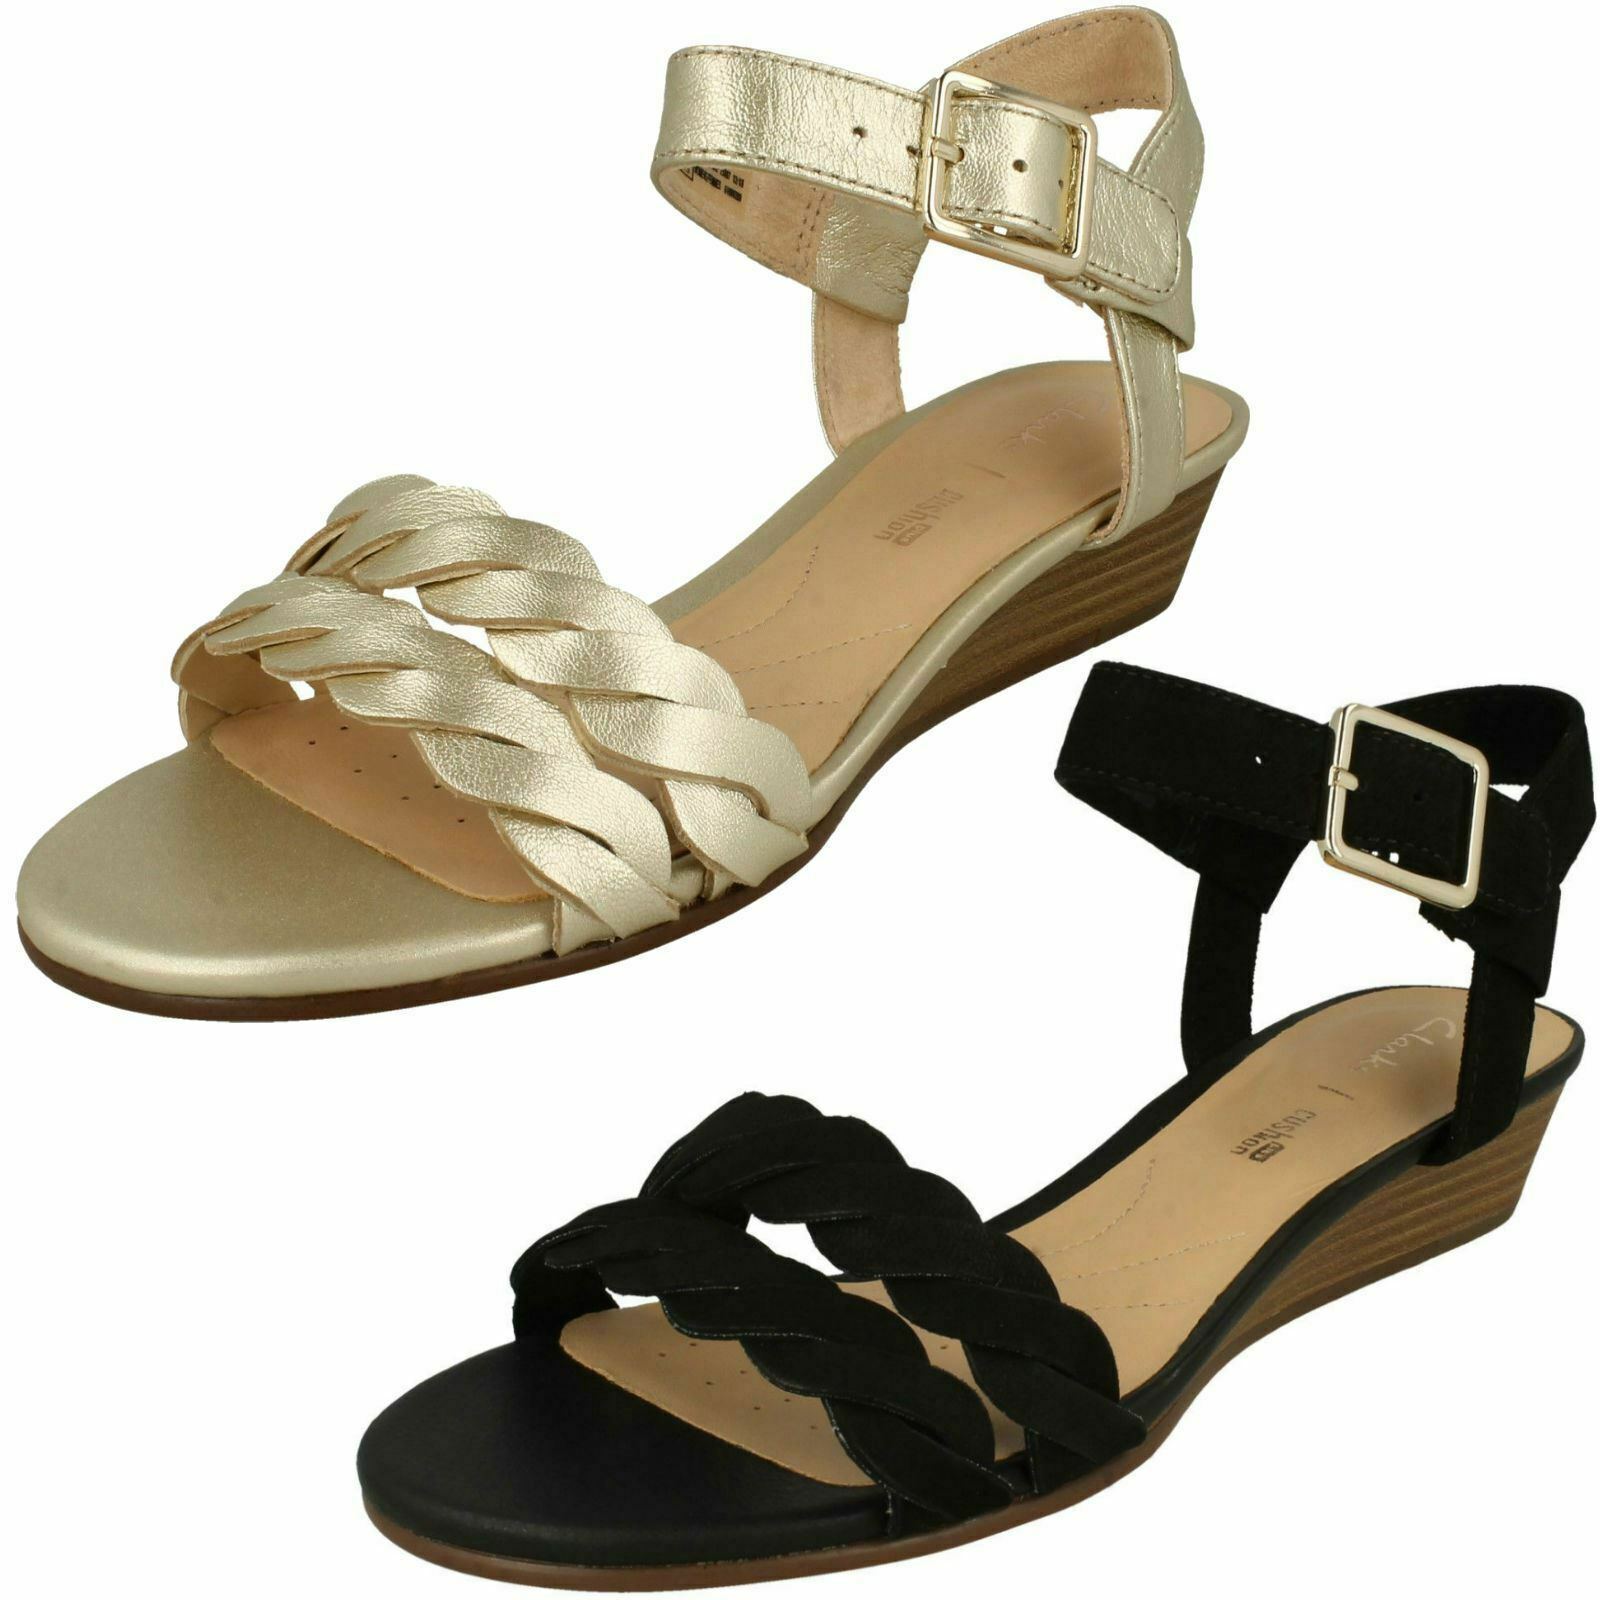 Ladies Clarks Mena Blossom Smart Leather Low Wedge Heel Sandals - D Fitting